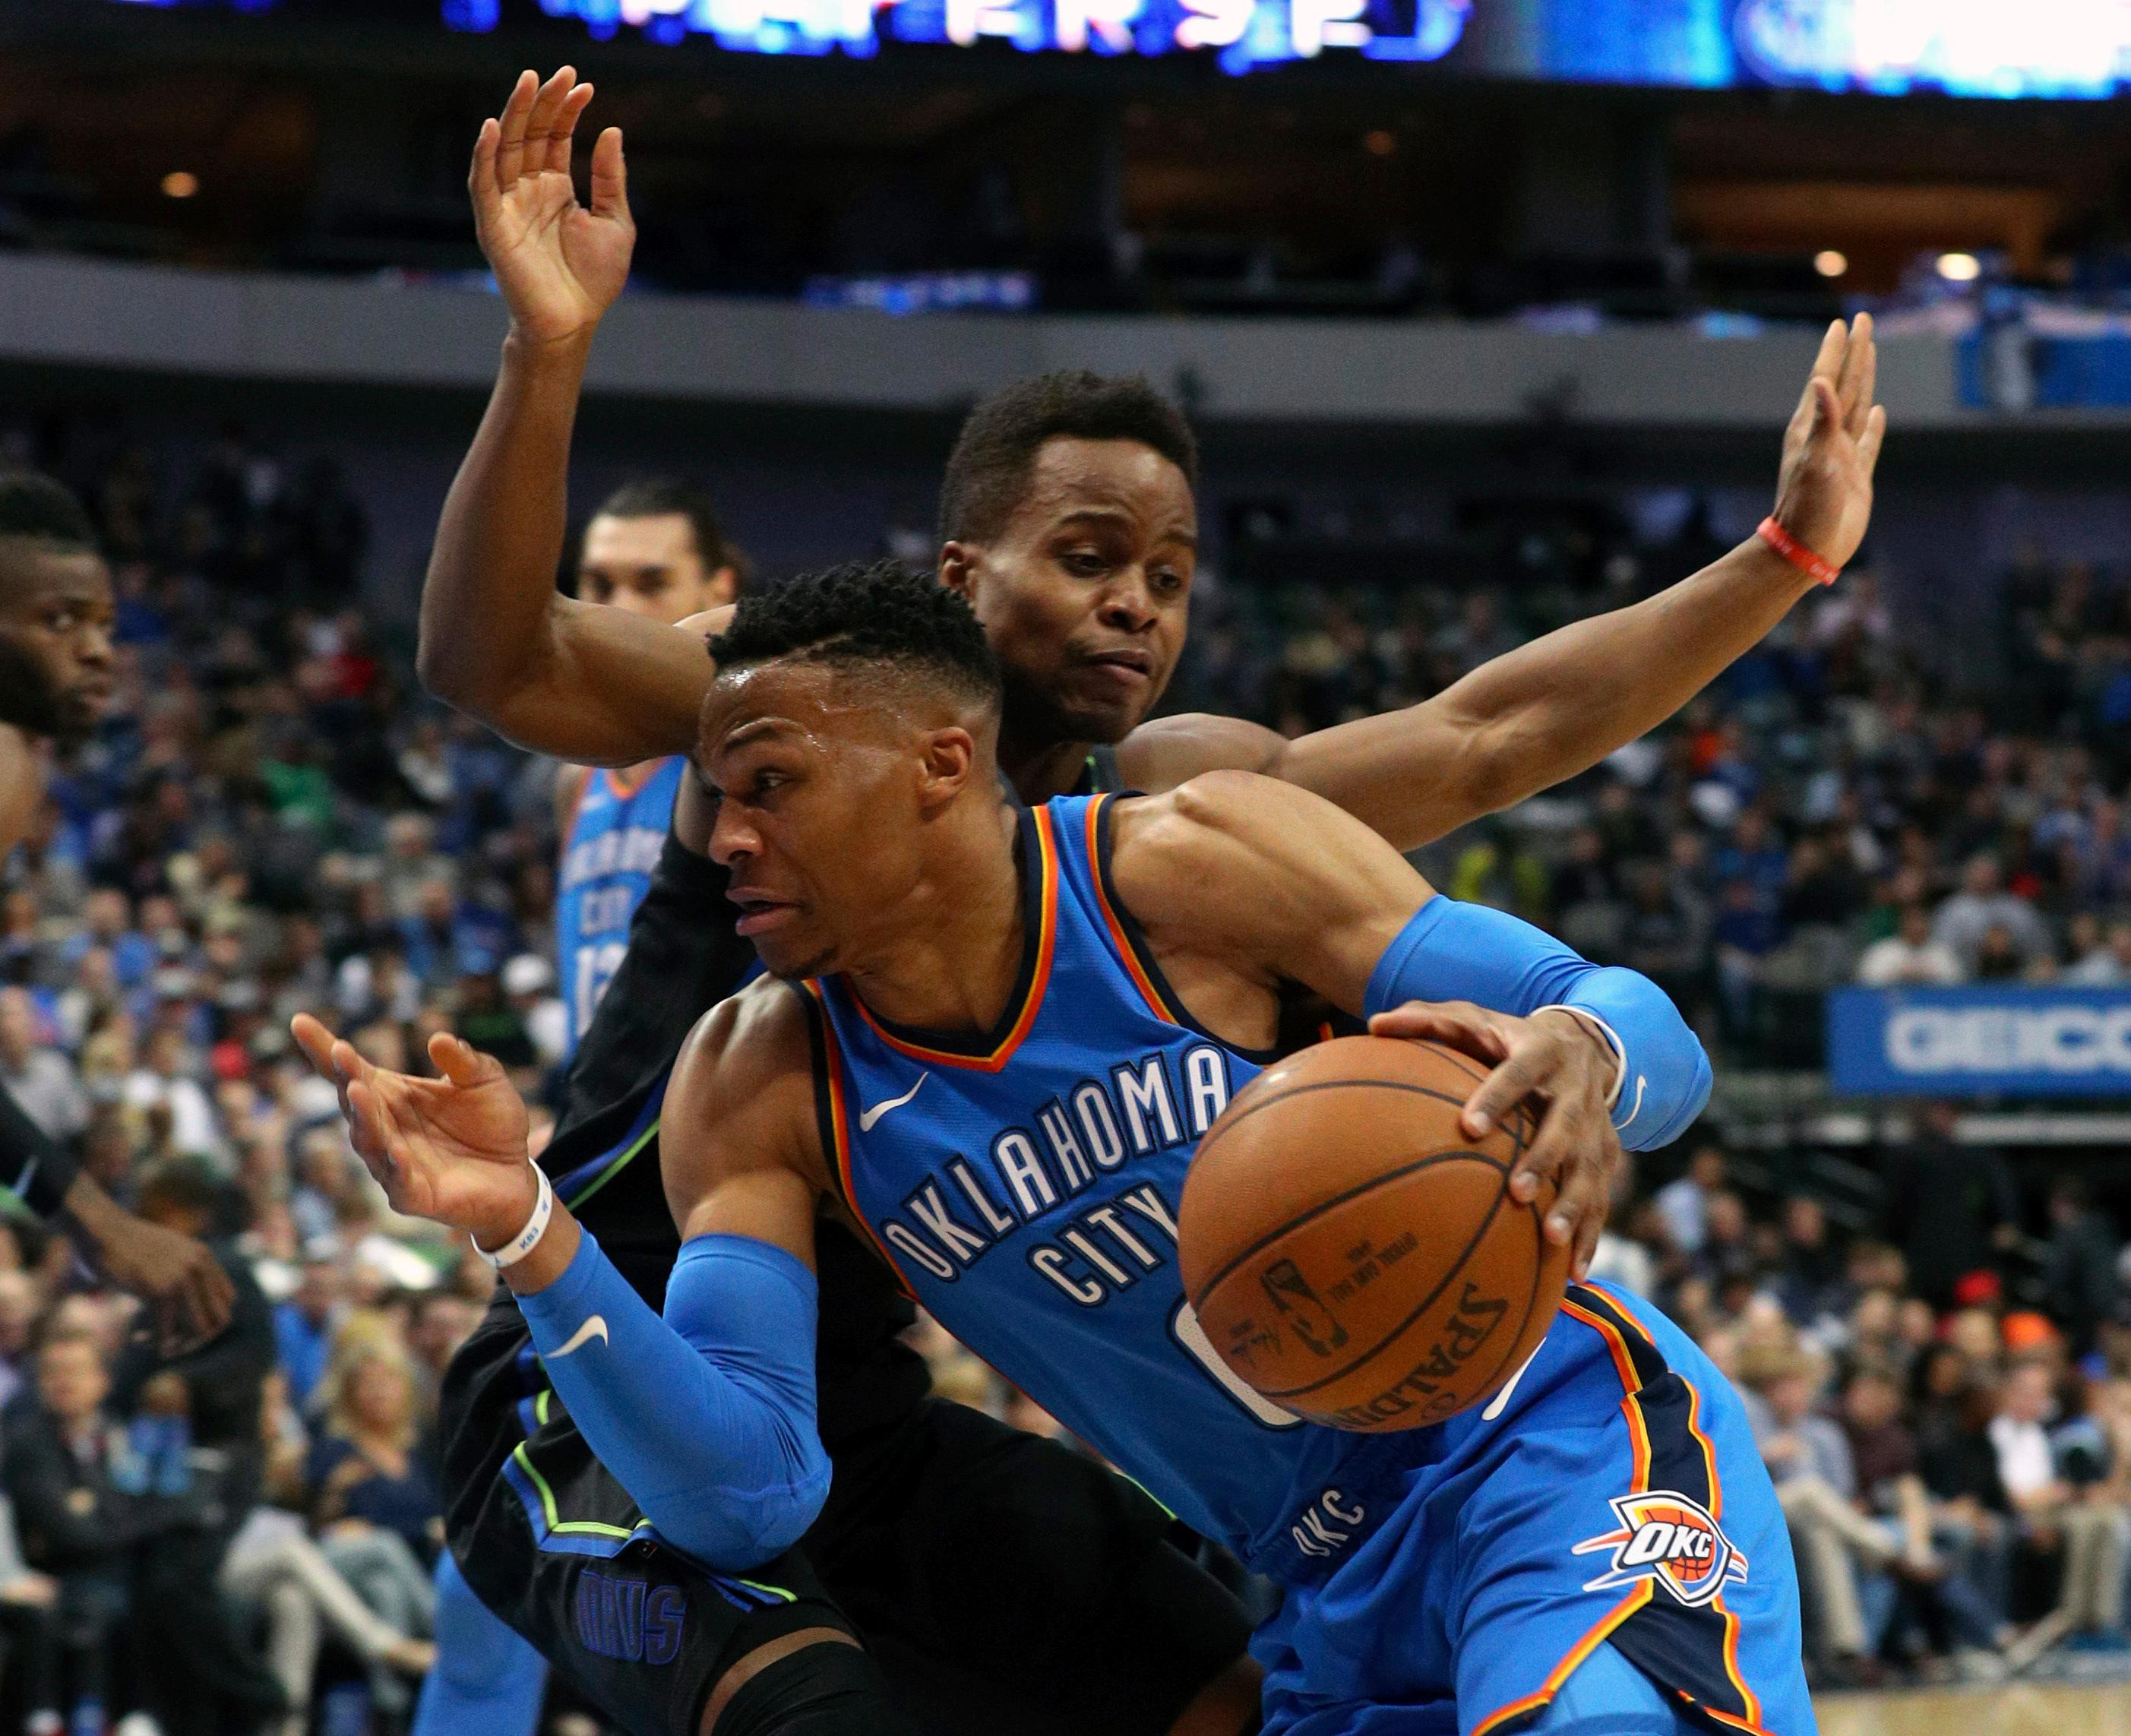 Oklahoma City Thunder guard Russell Westbrook (0) drives toward the basket as Dallas Mavericks guard Yogi Ferrell (11) defends during the first half of an NBA basketball game Wednesday, Feb. 28, 2018 in Dallas. (AP Photo/Richard W. Rodriguez)